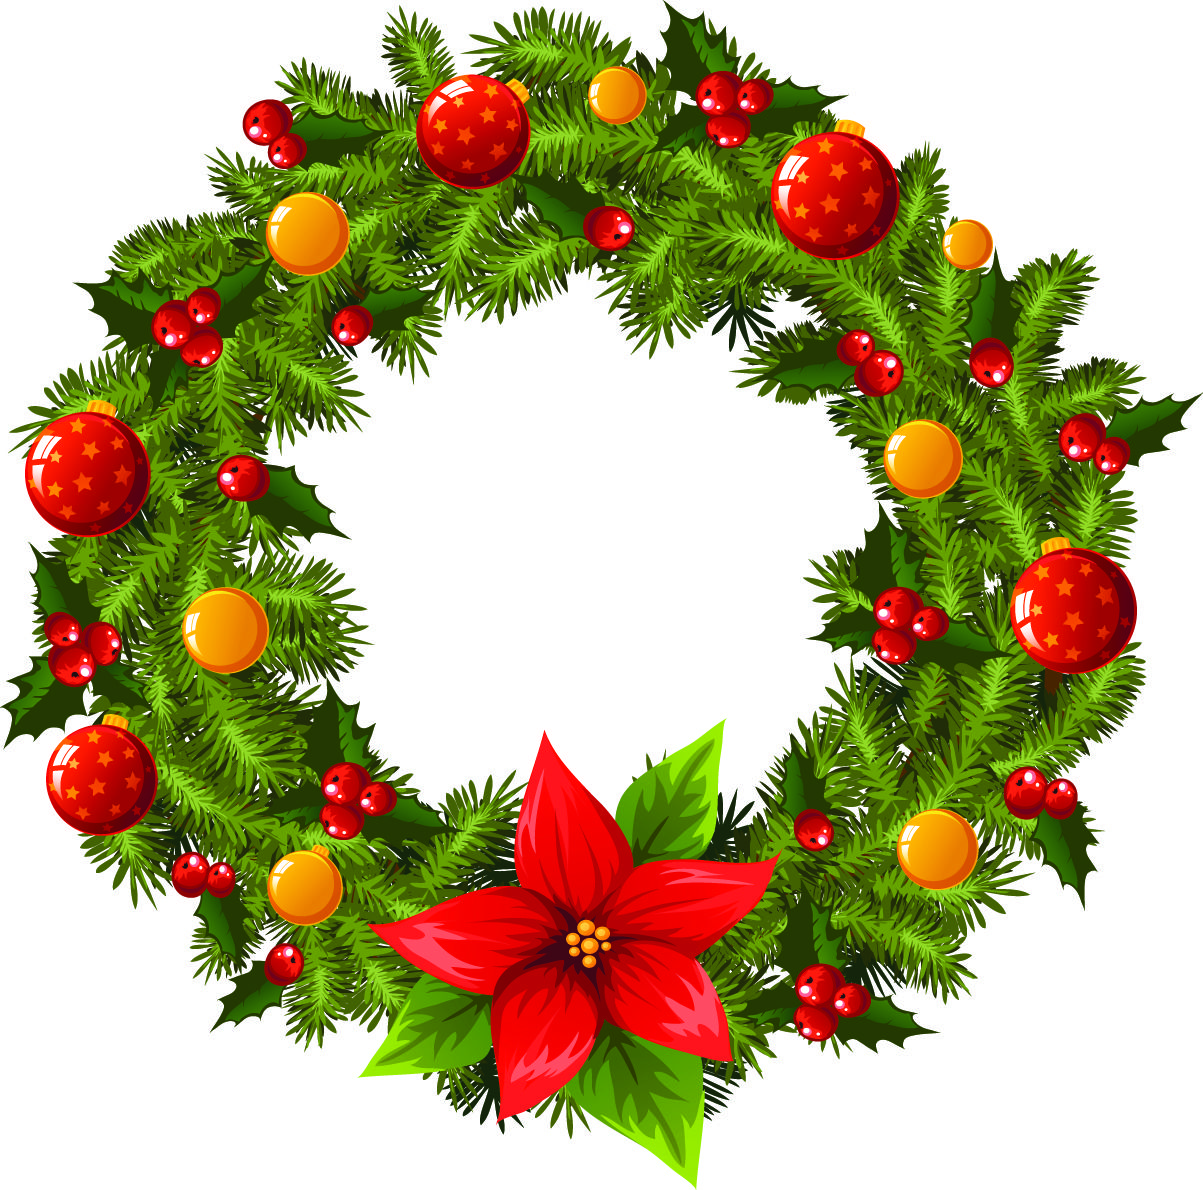 9 Christmas Wreath Vector Free Images.